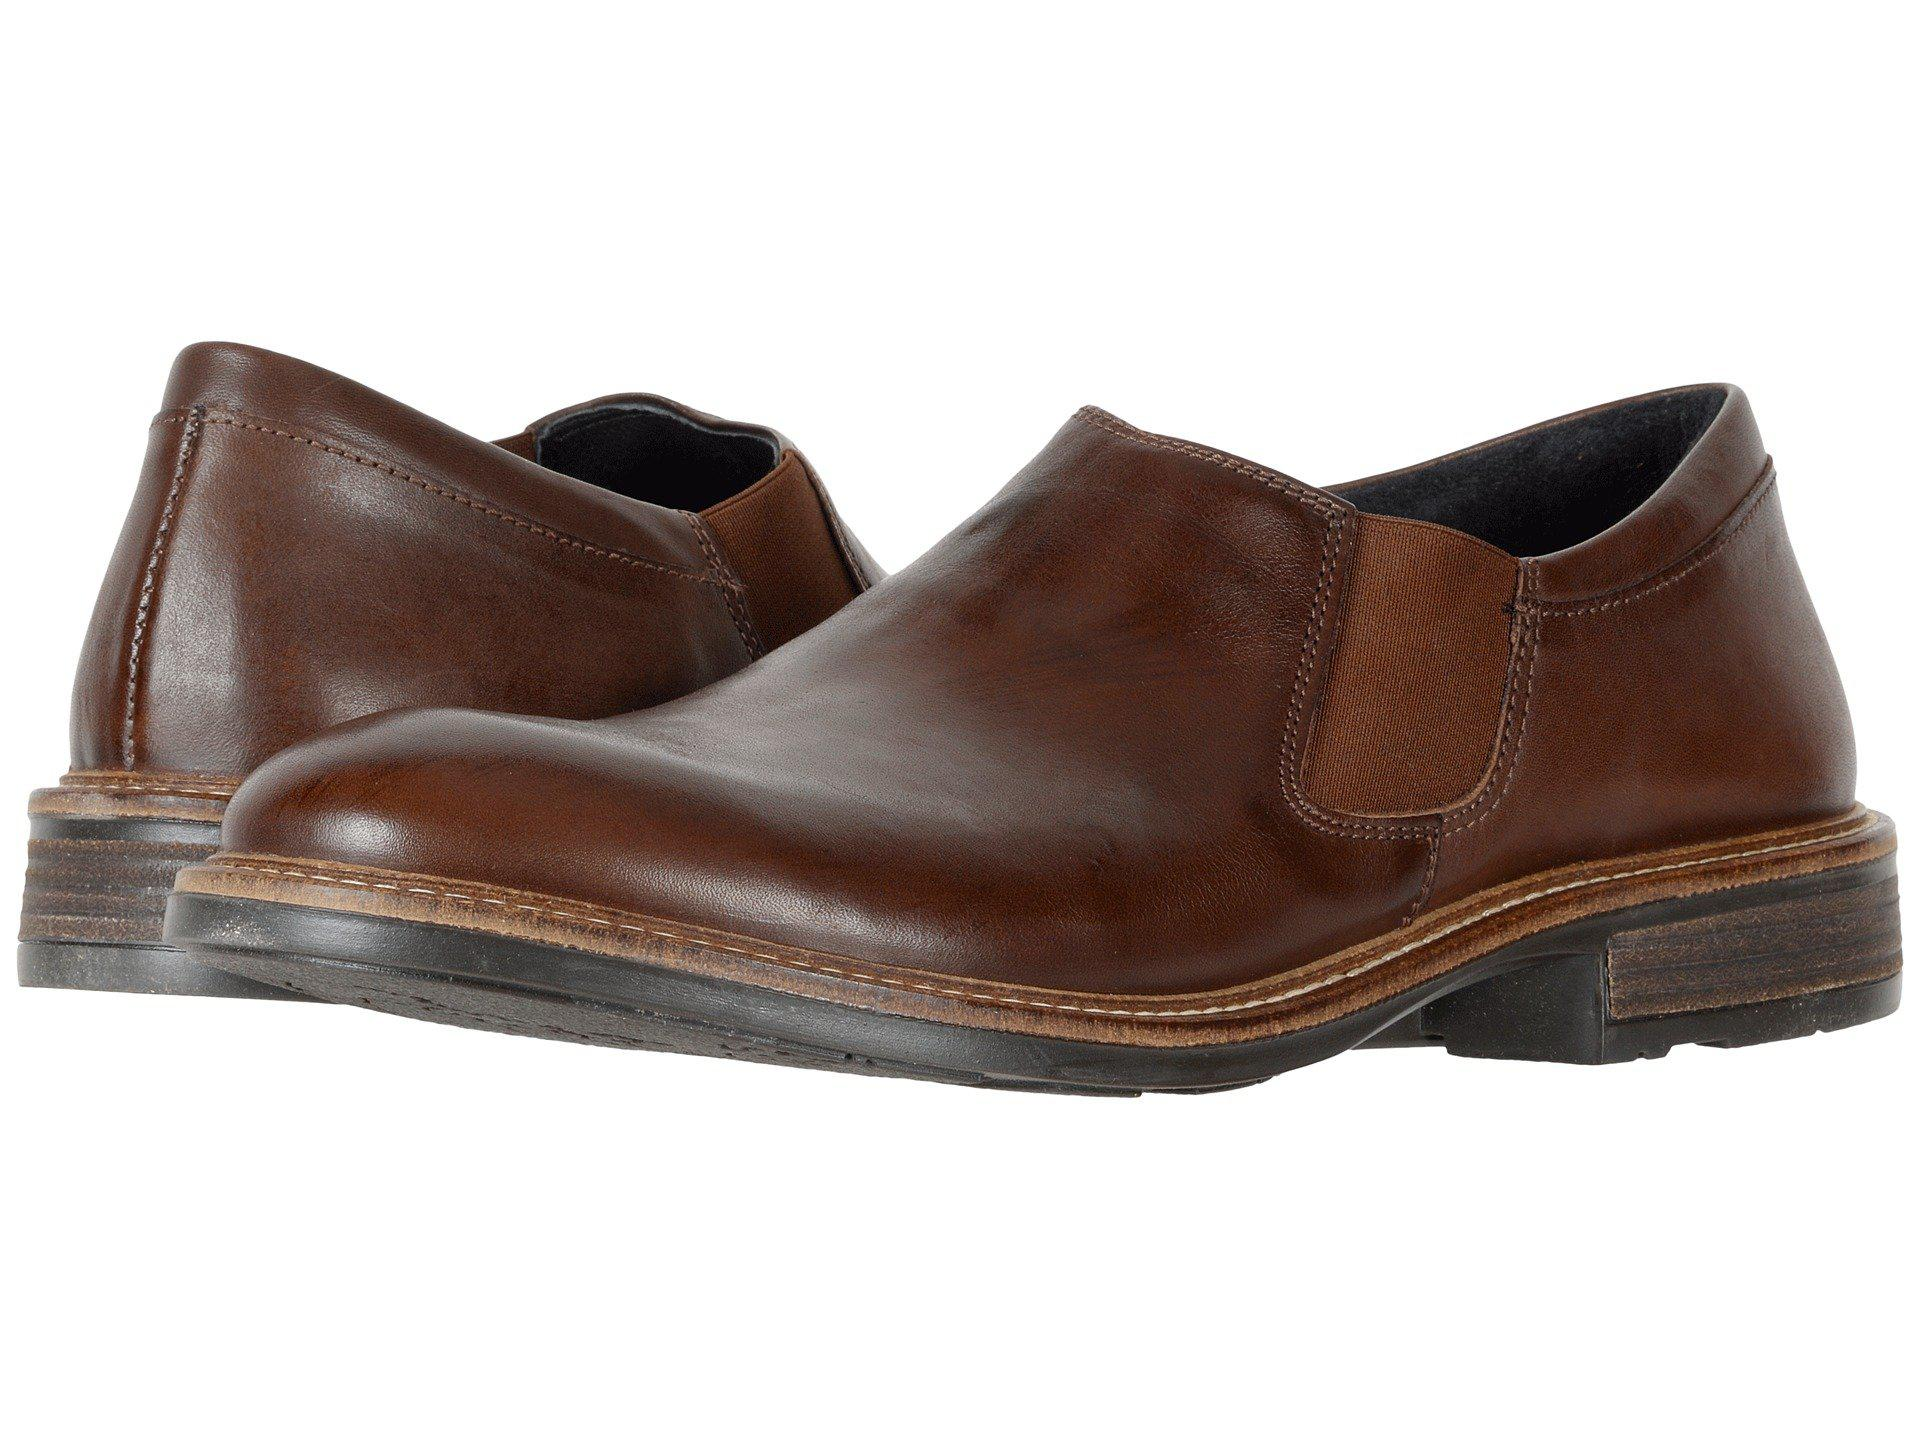 7350e47f433816 Lyst - Naot Director (toffee Brown Leather) Men s Slip On Shoes in ...